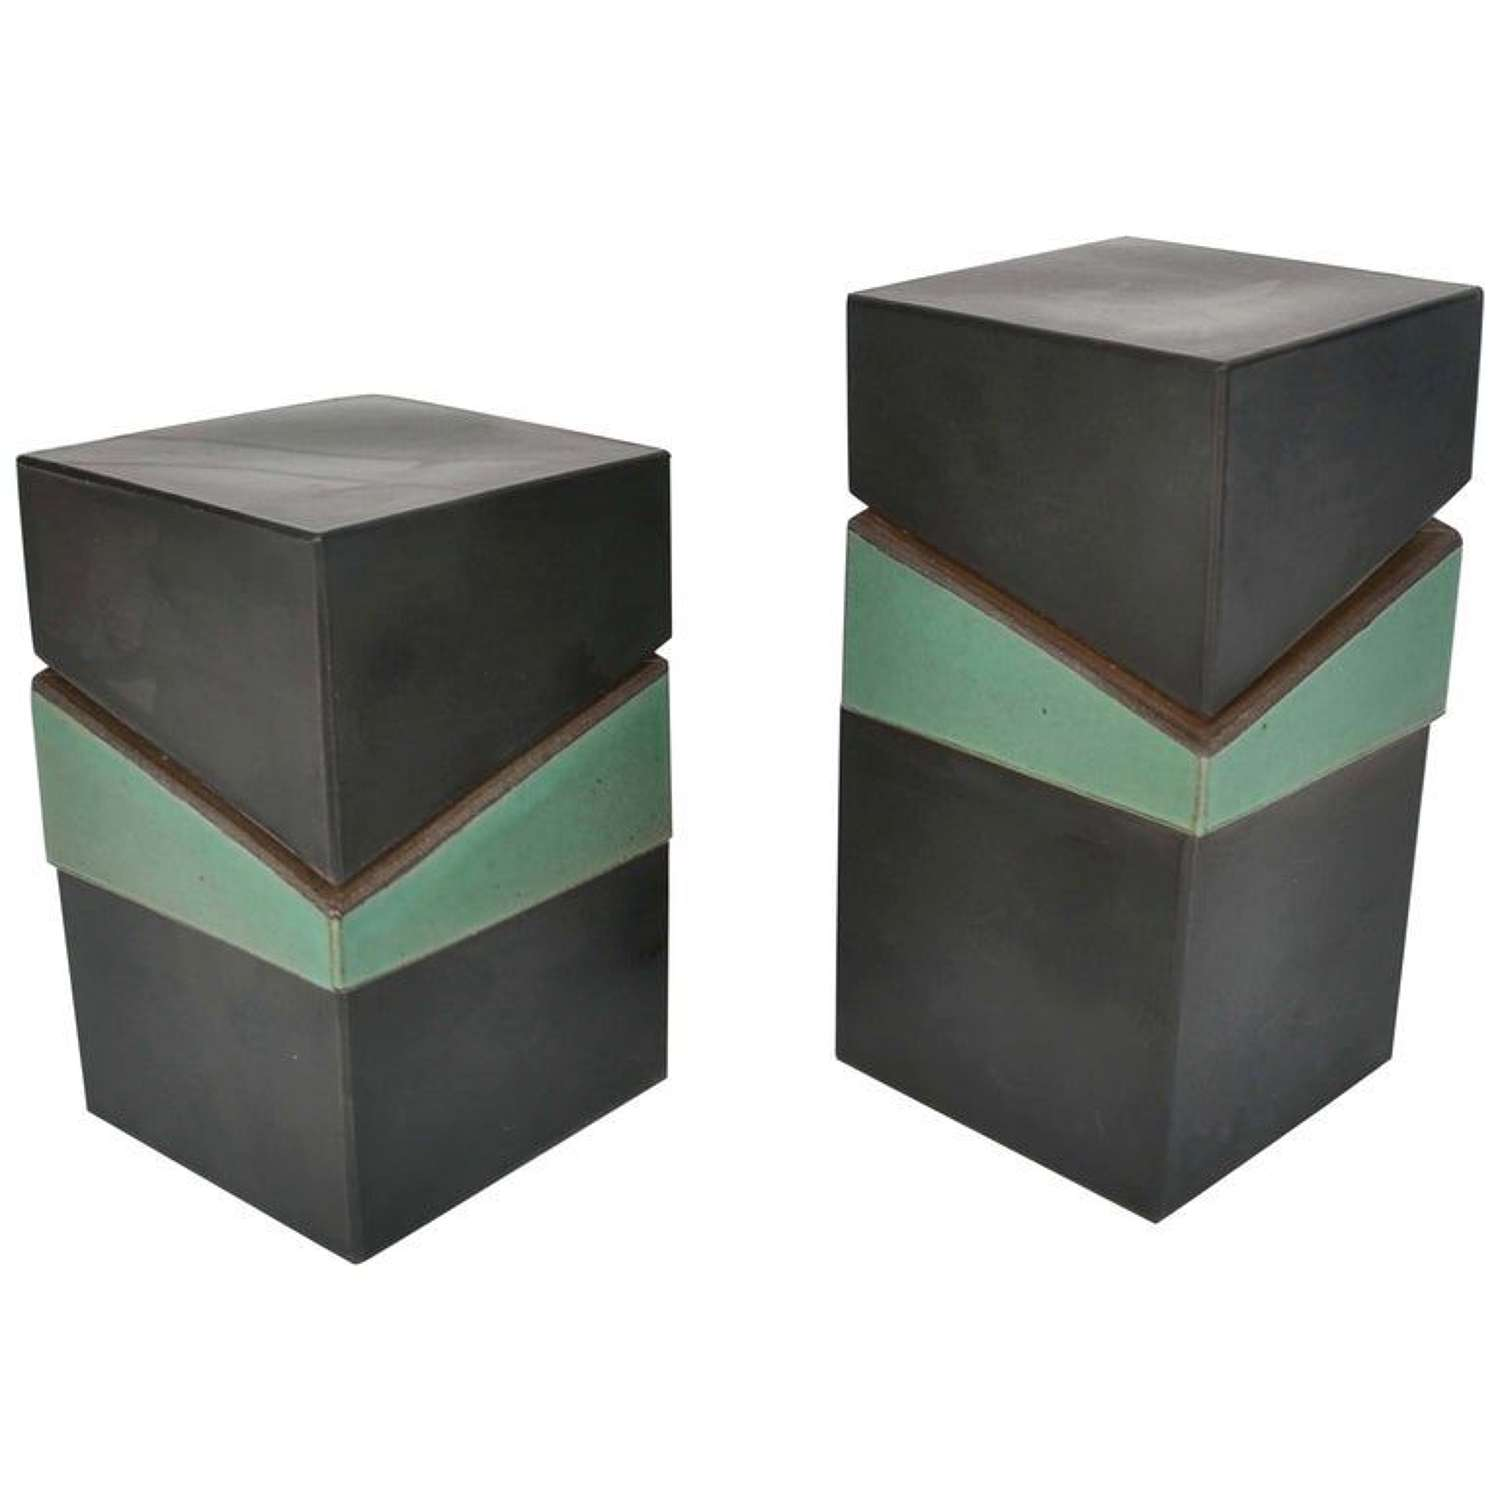 Pair of Square Studio Pottery Boxes in Green and Black